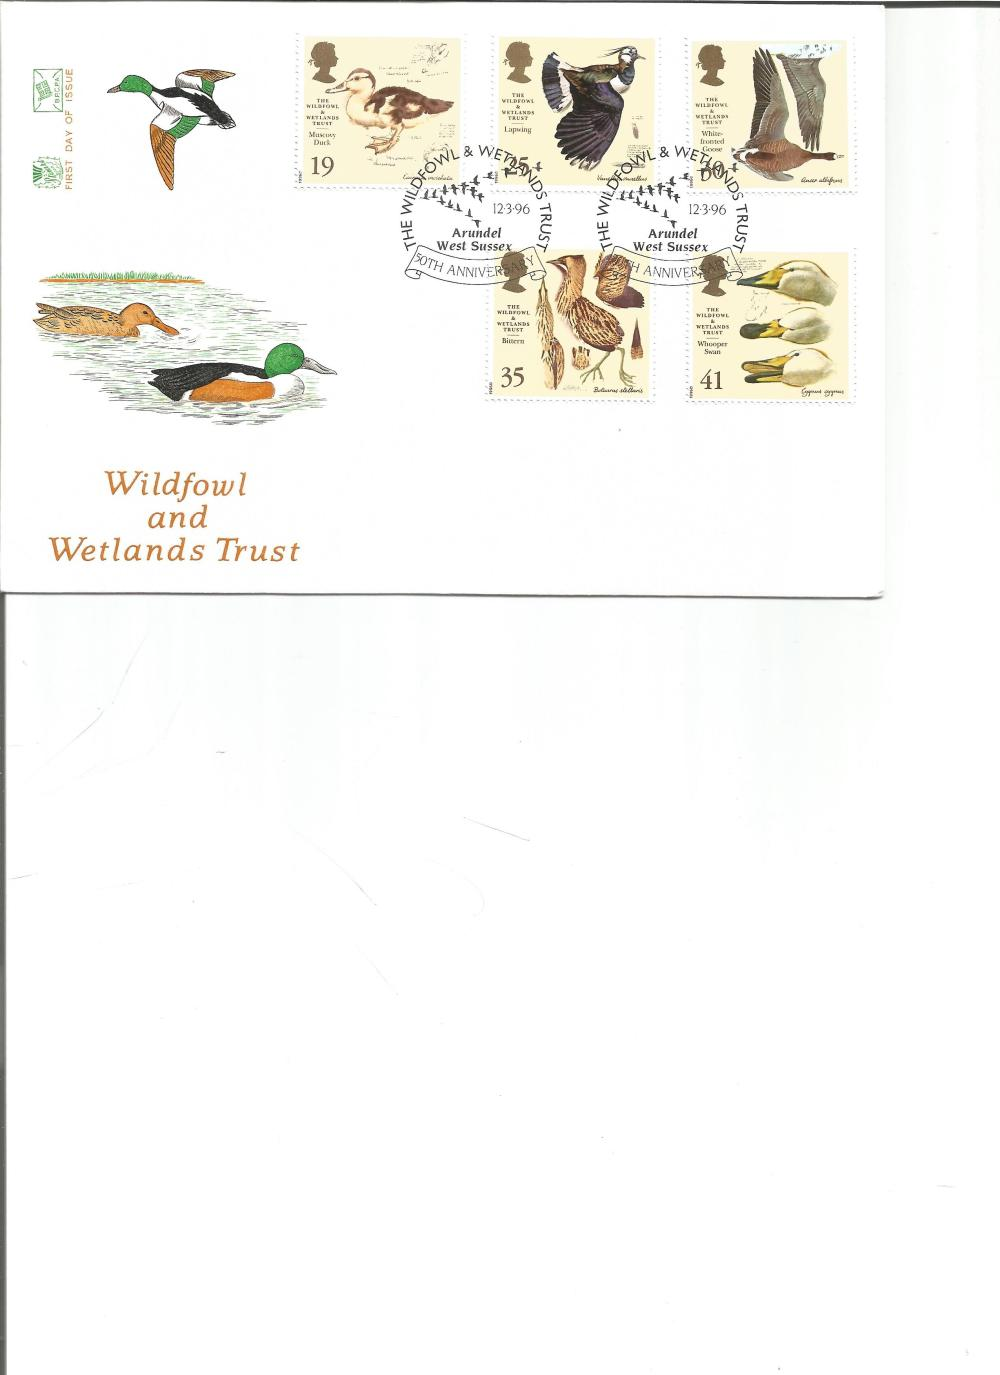 FDC Wildfowl and Wetlands Trust c/w set of five stamps double PM The Wildfowl &Wetland Trust 50th